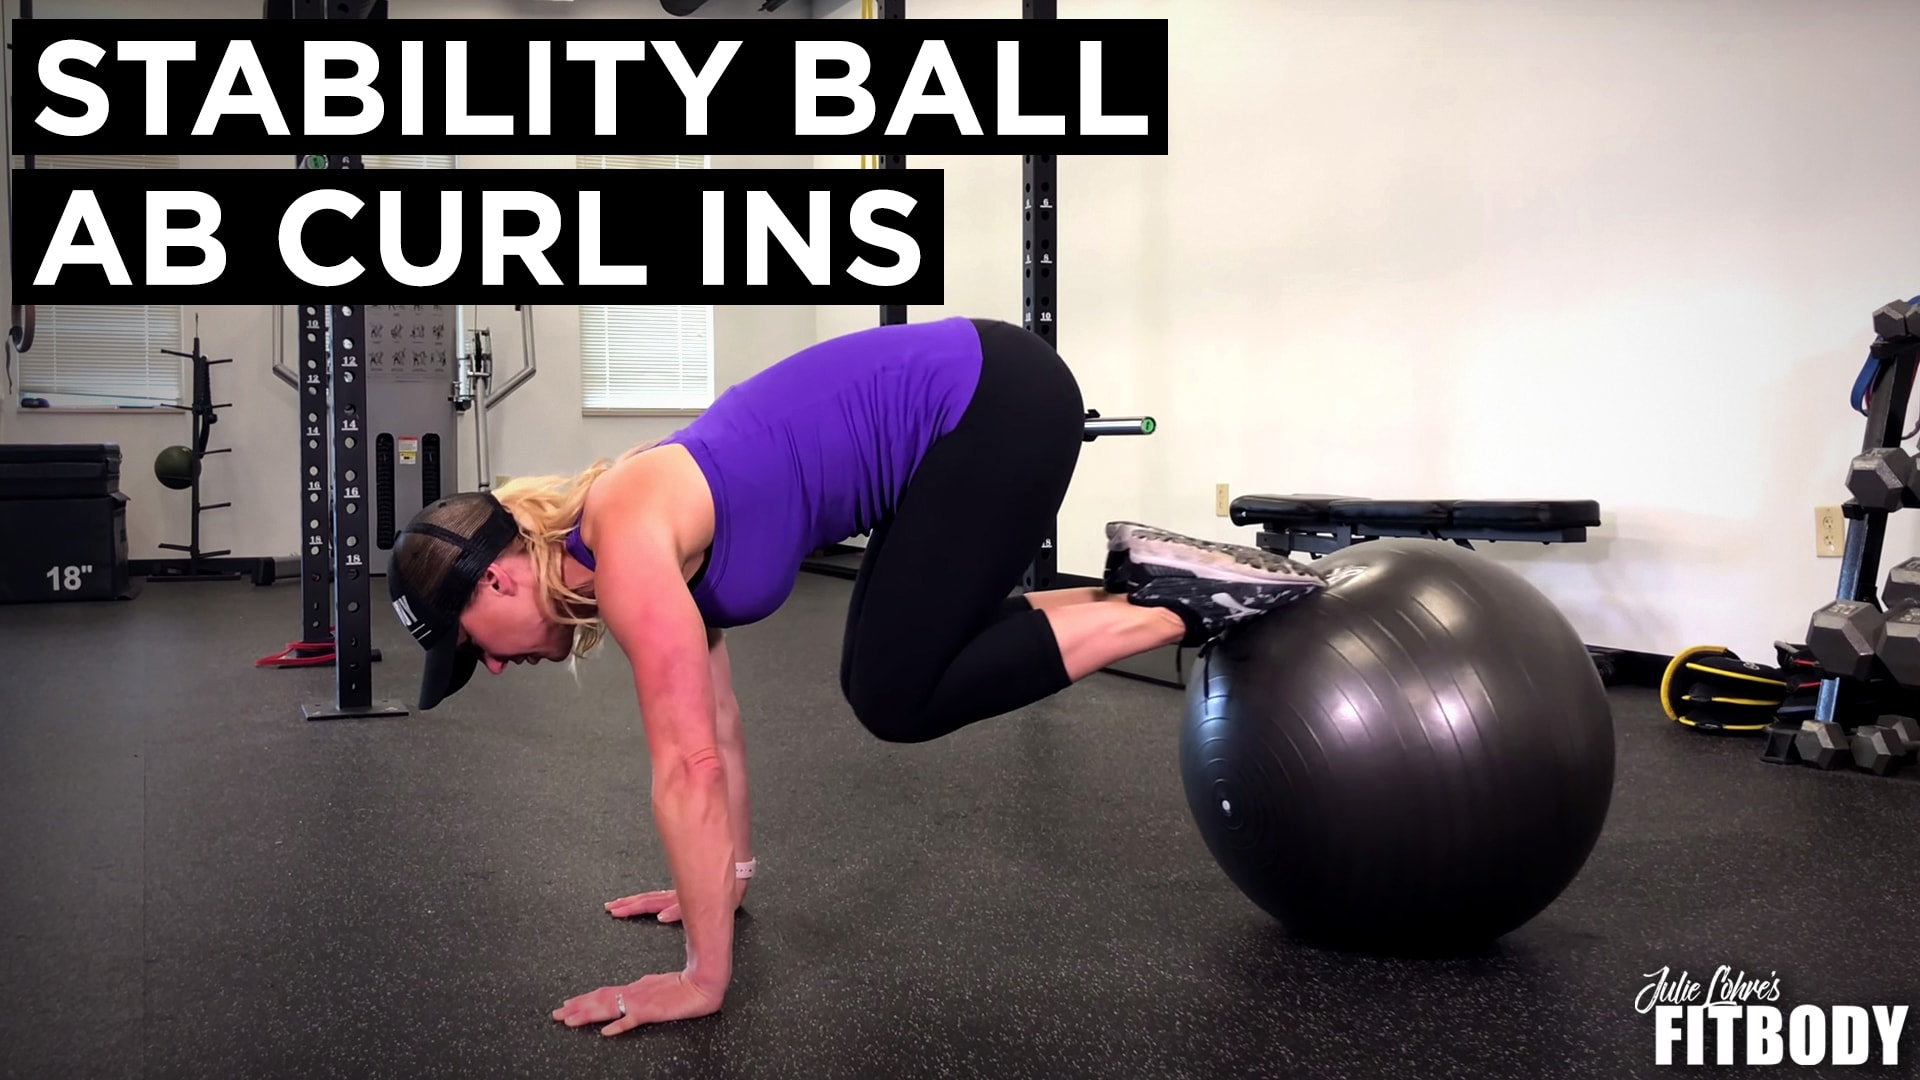 Stability Ball Ab CurlIns